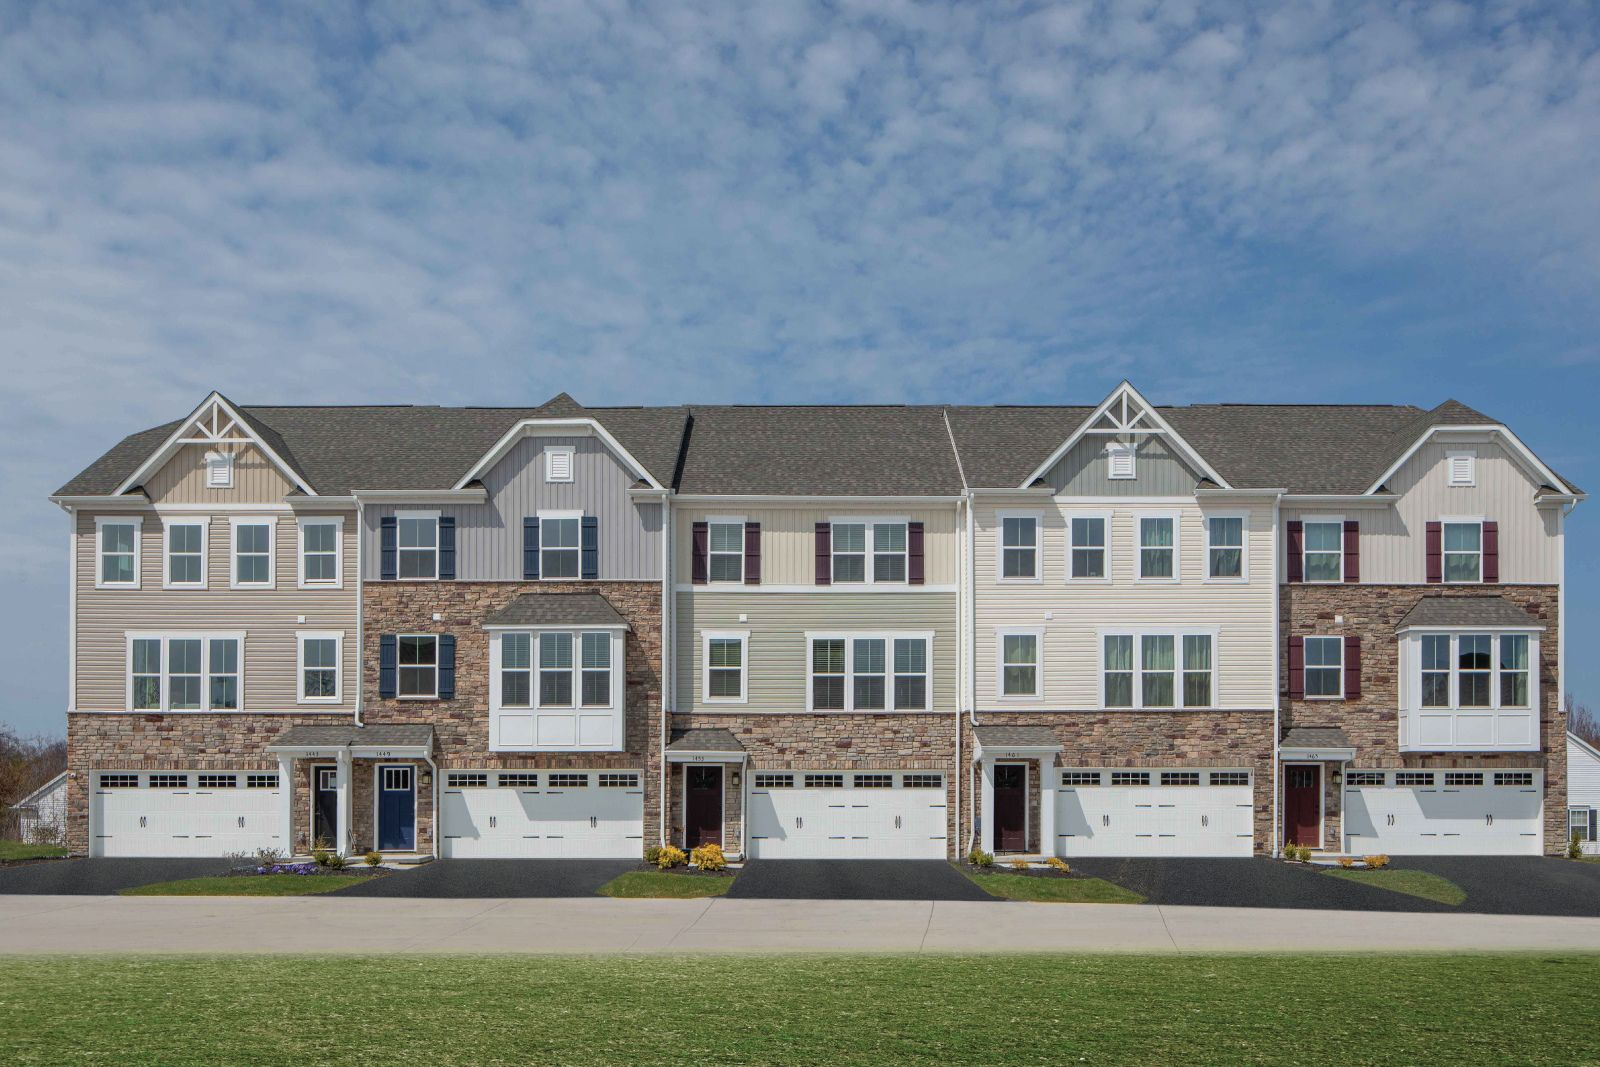 Welcome to Whitetail Meadows Townhomes:The best located new low maintenance townhomes in Adams Township with direct access to Route 228 in Mars School District.Click hereto schedule your visit today and tour the decorated model home.